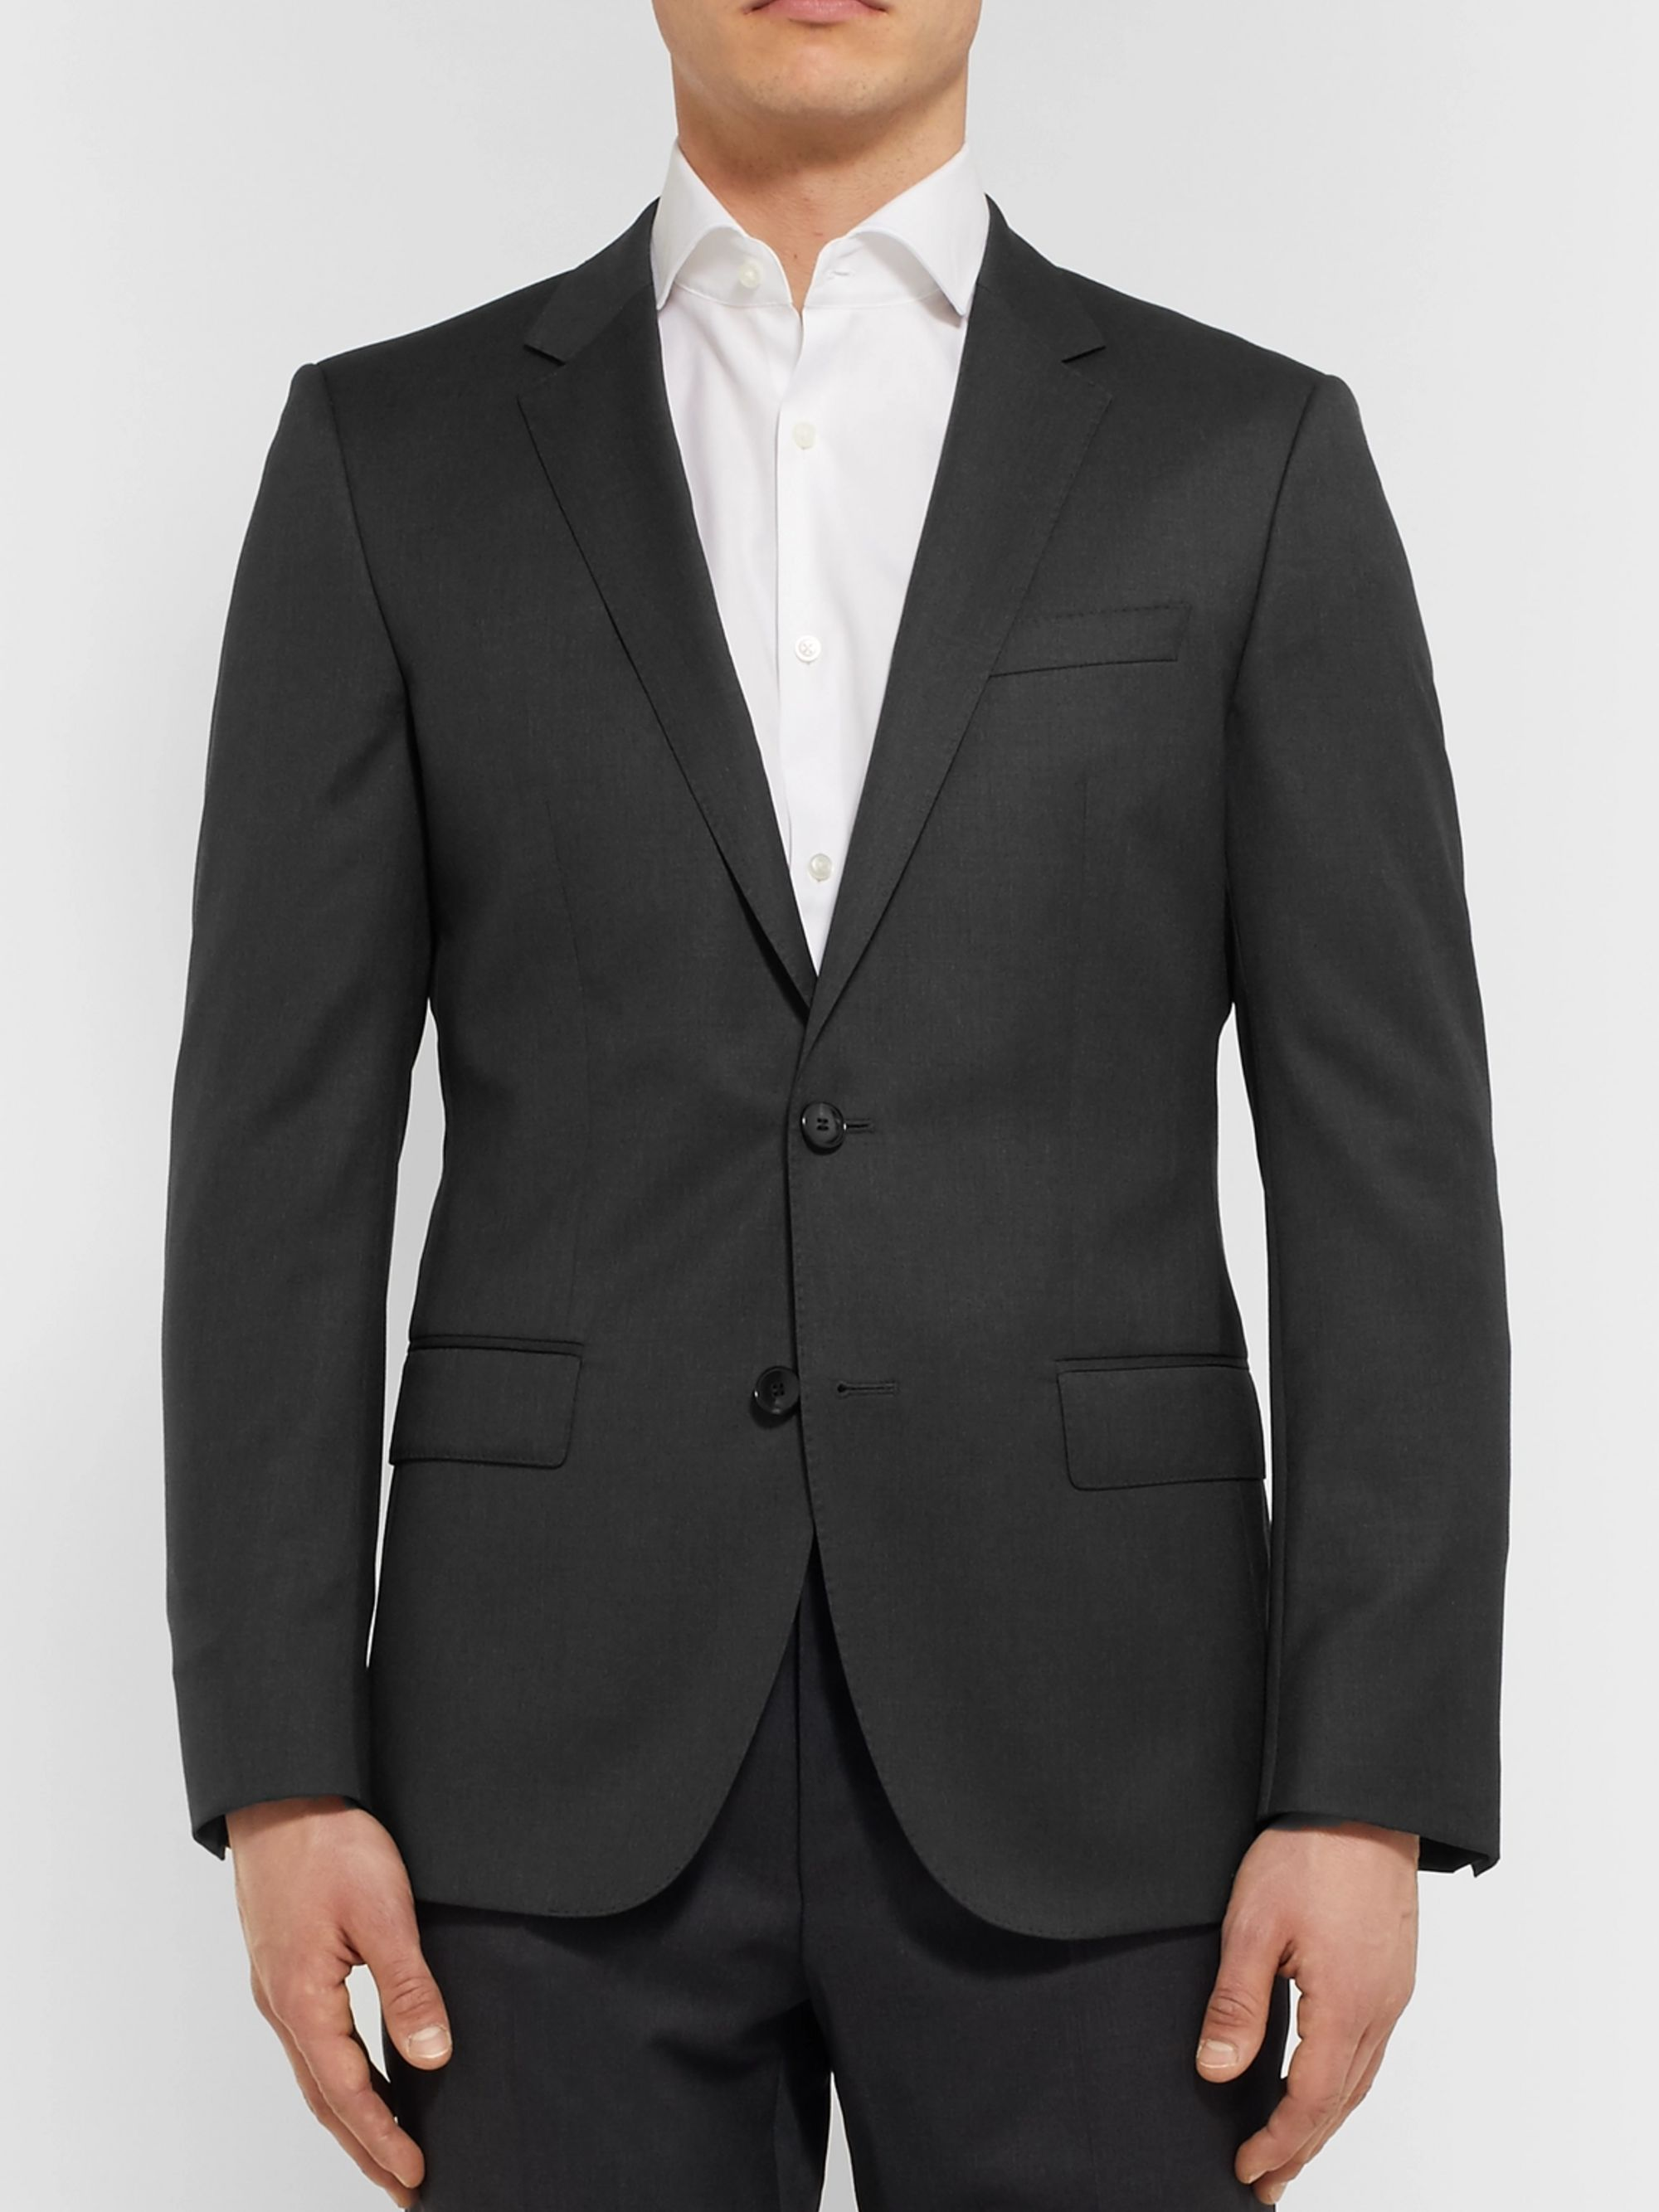 Hugo Boss Grey Hayes Slim-Fit Super 120s Virgin Wool Suit Jacket